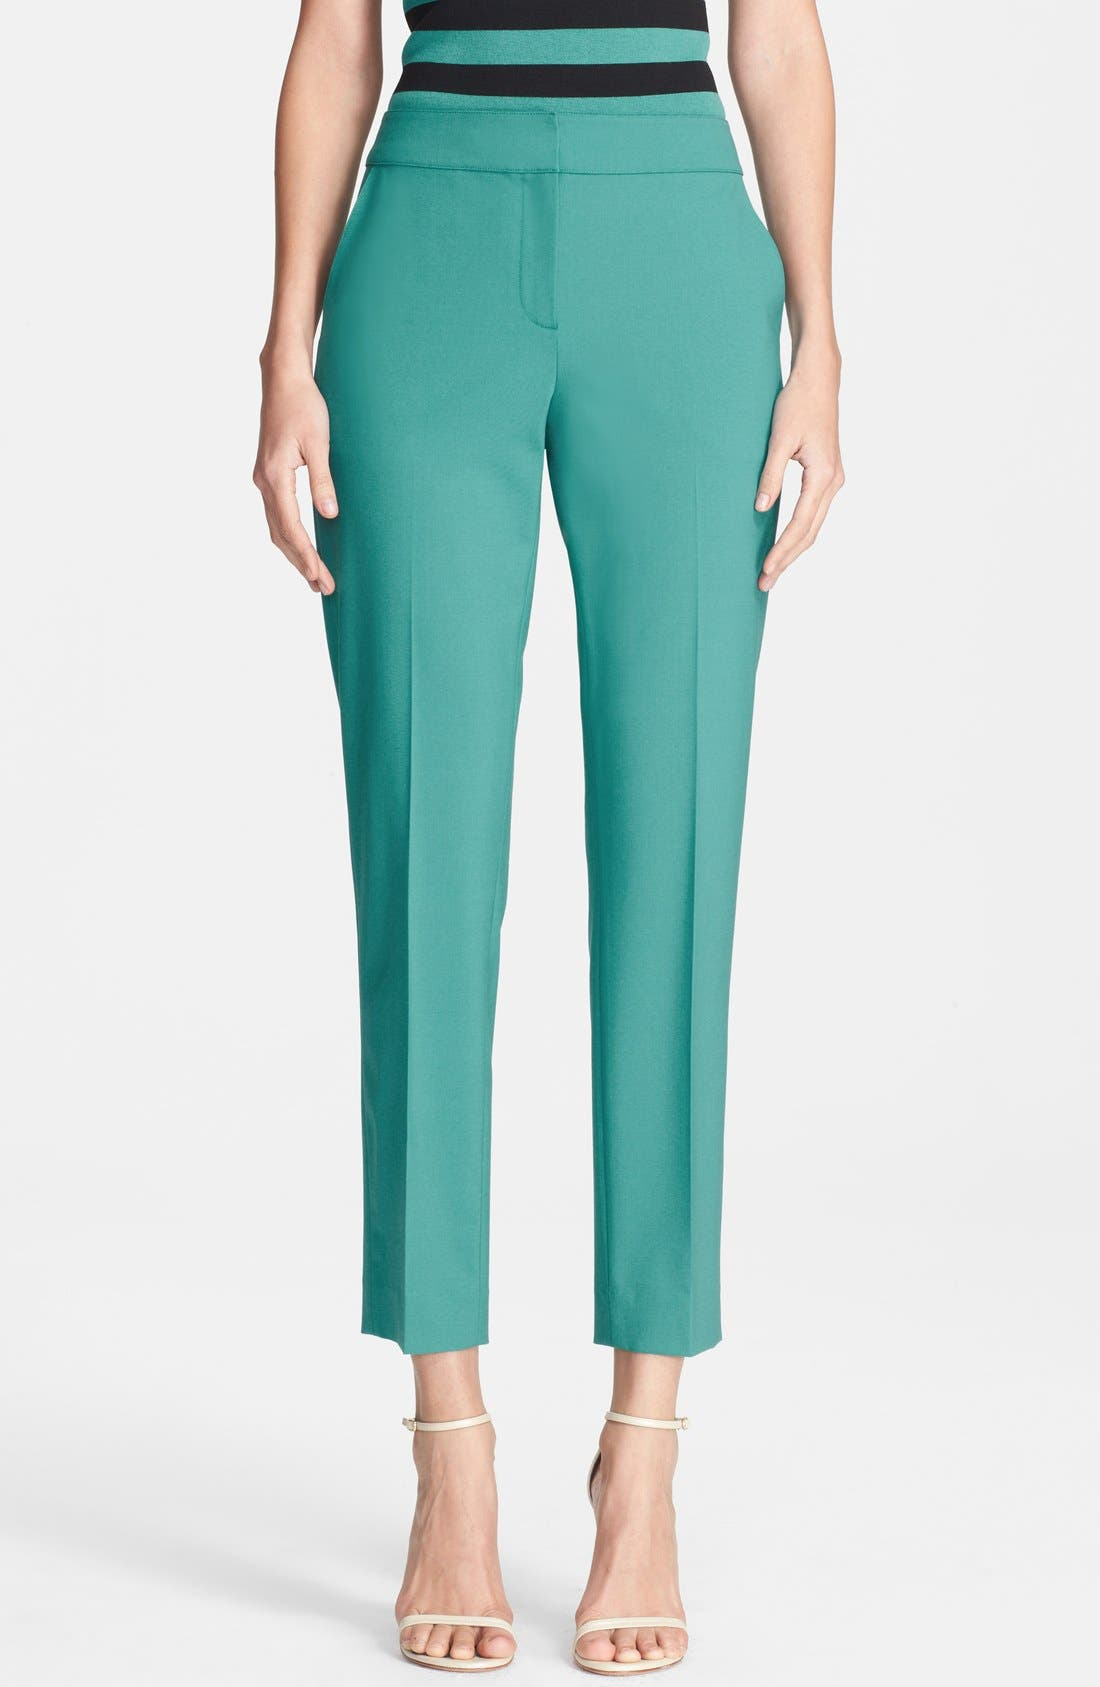 Main Image - St. John Collection 'Emma' Stretch Tropical Crop Pants